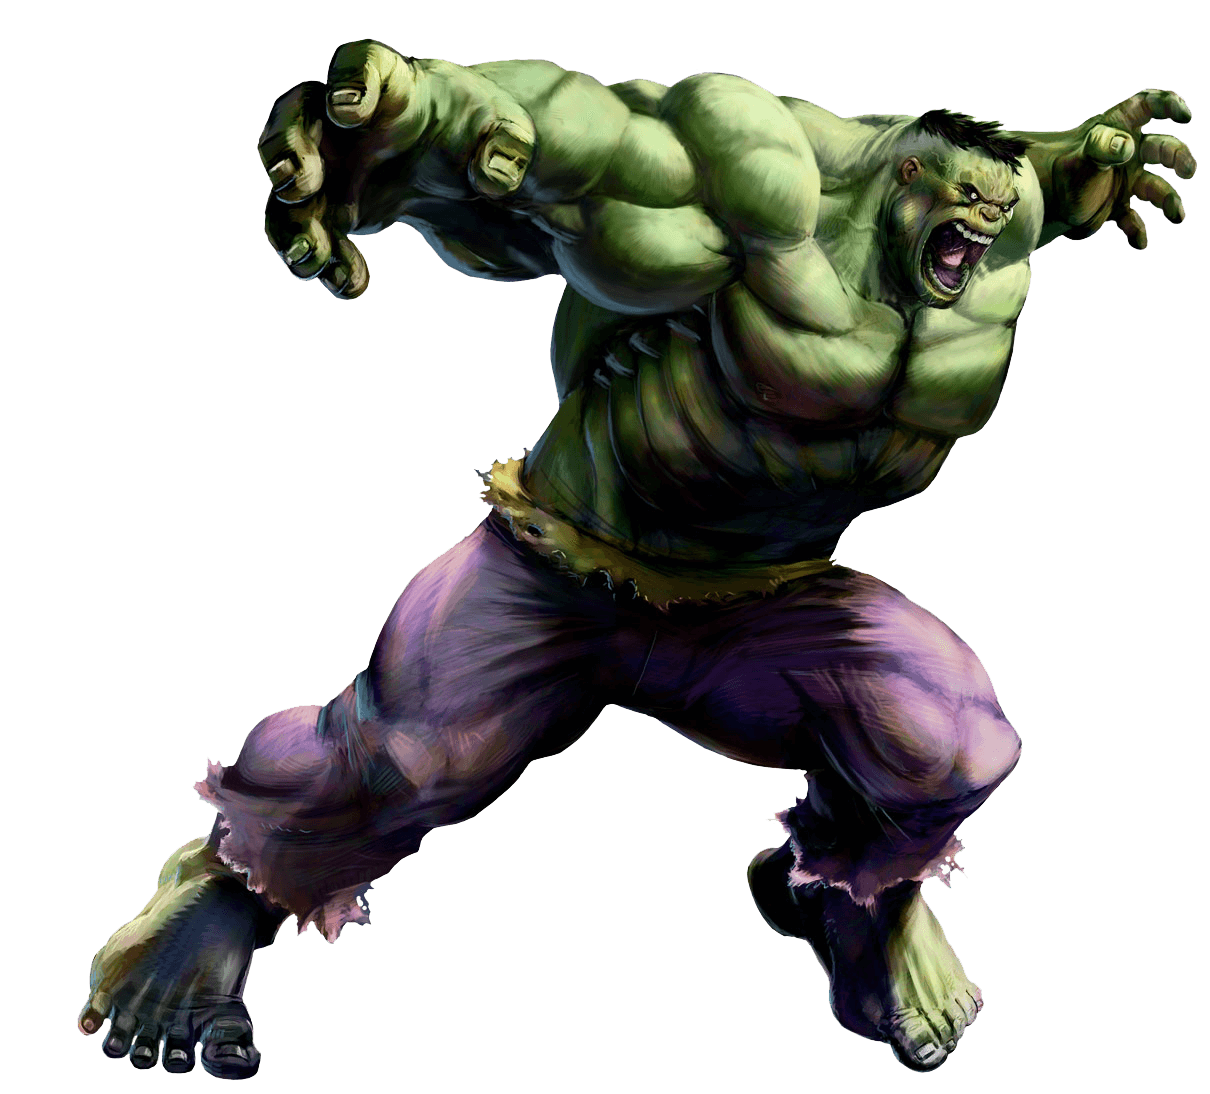 Hands clipart incredible hulk. The png hd big